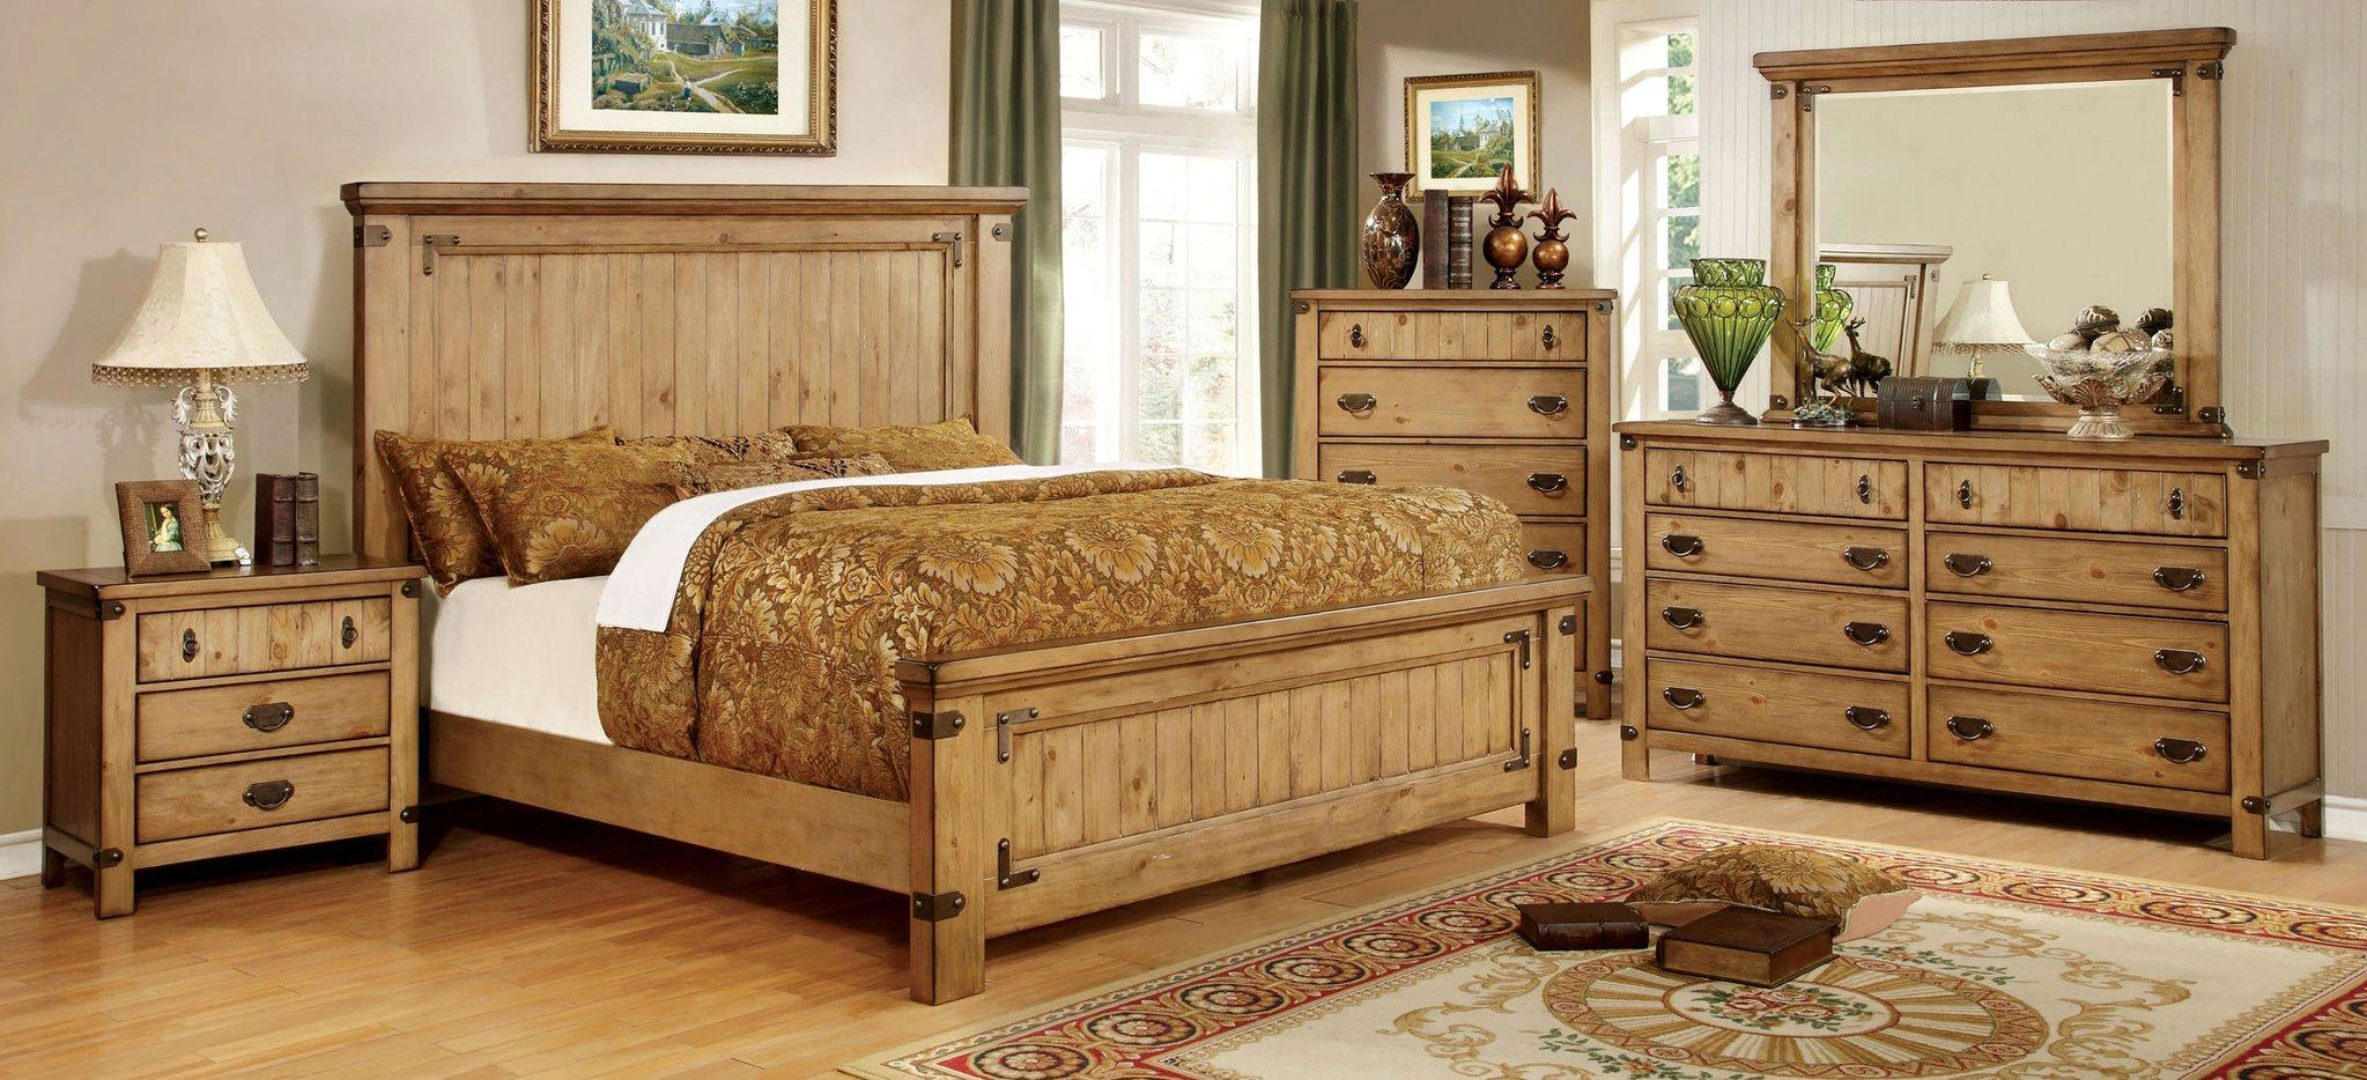 Cottage Wood King Bedroom Set 5 W Chest Natural Pioneer By Furniture Of America Cm7449ek 5pc Chest